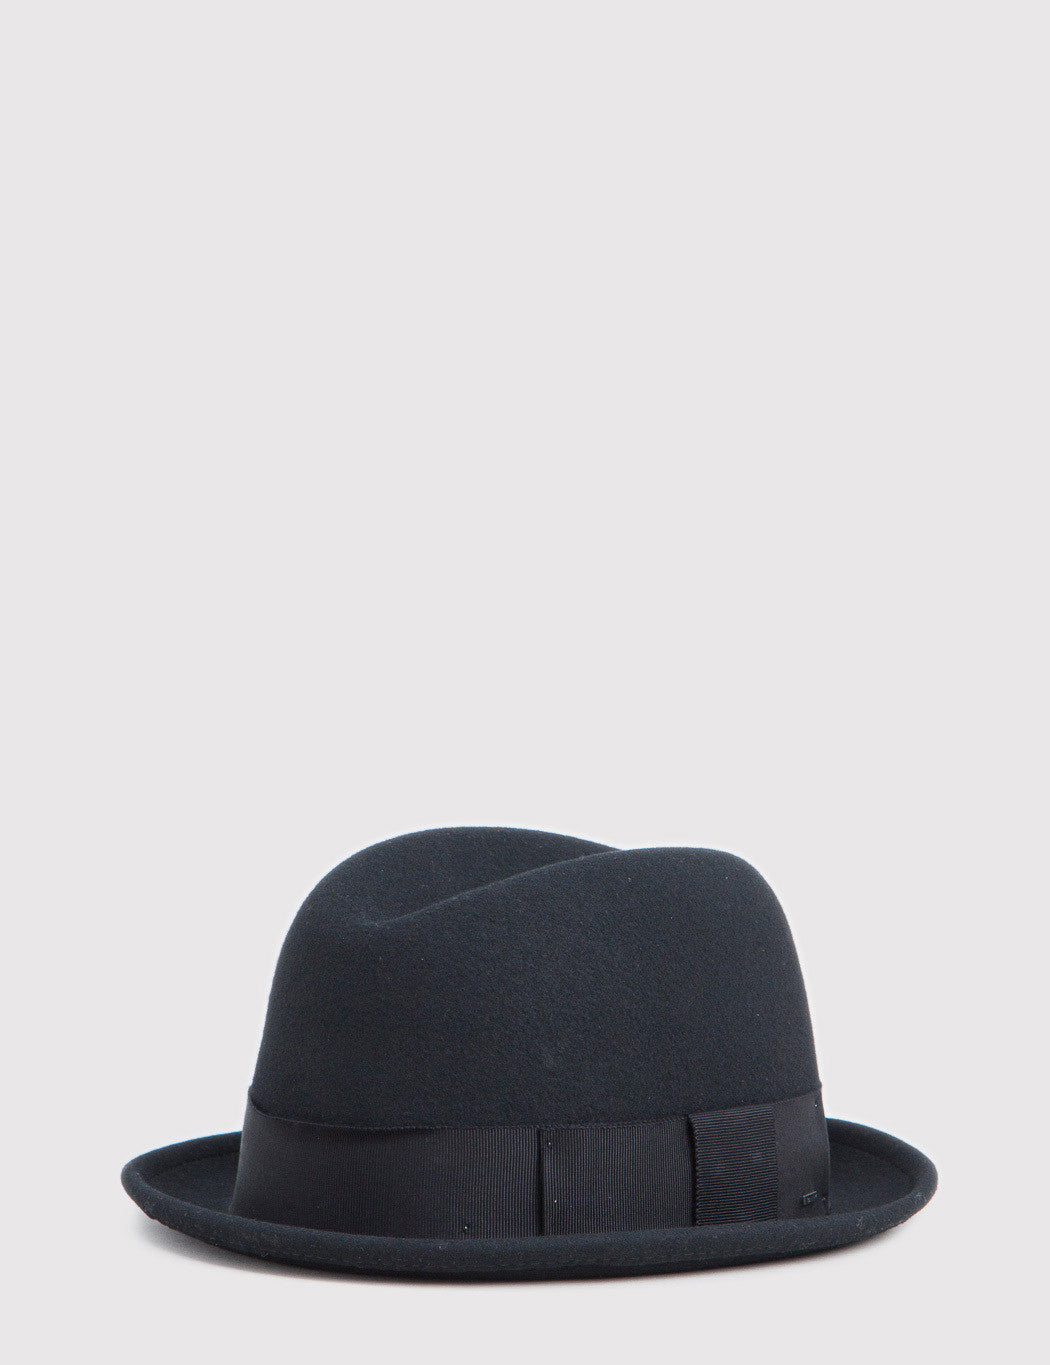 Bailey Timson Centre Crease Tribly Hat - Black - Black / L (58-59cm)